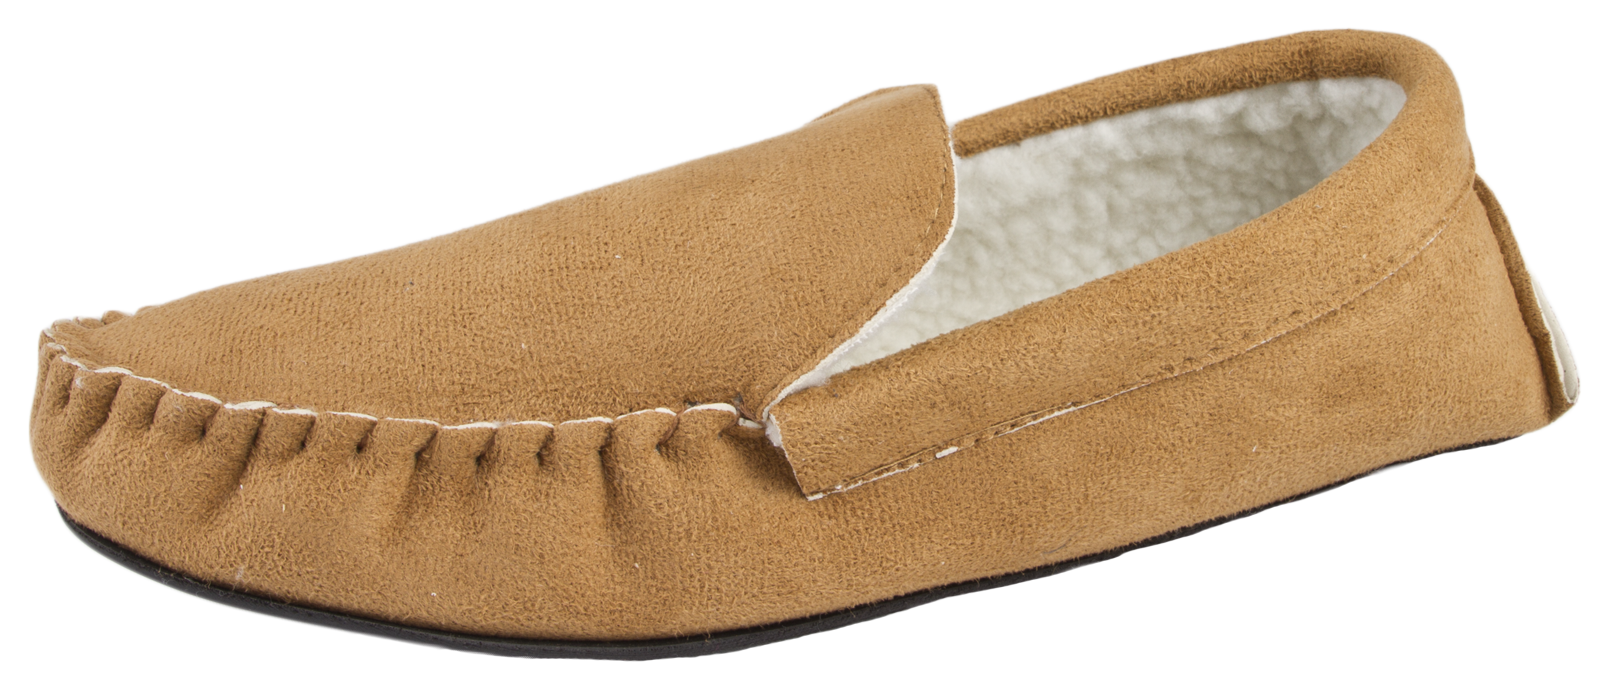 Mens-Moccasins-Faux-Suede-Slippers-Warm-Winter-Faux-